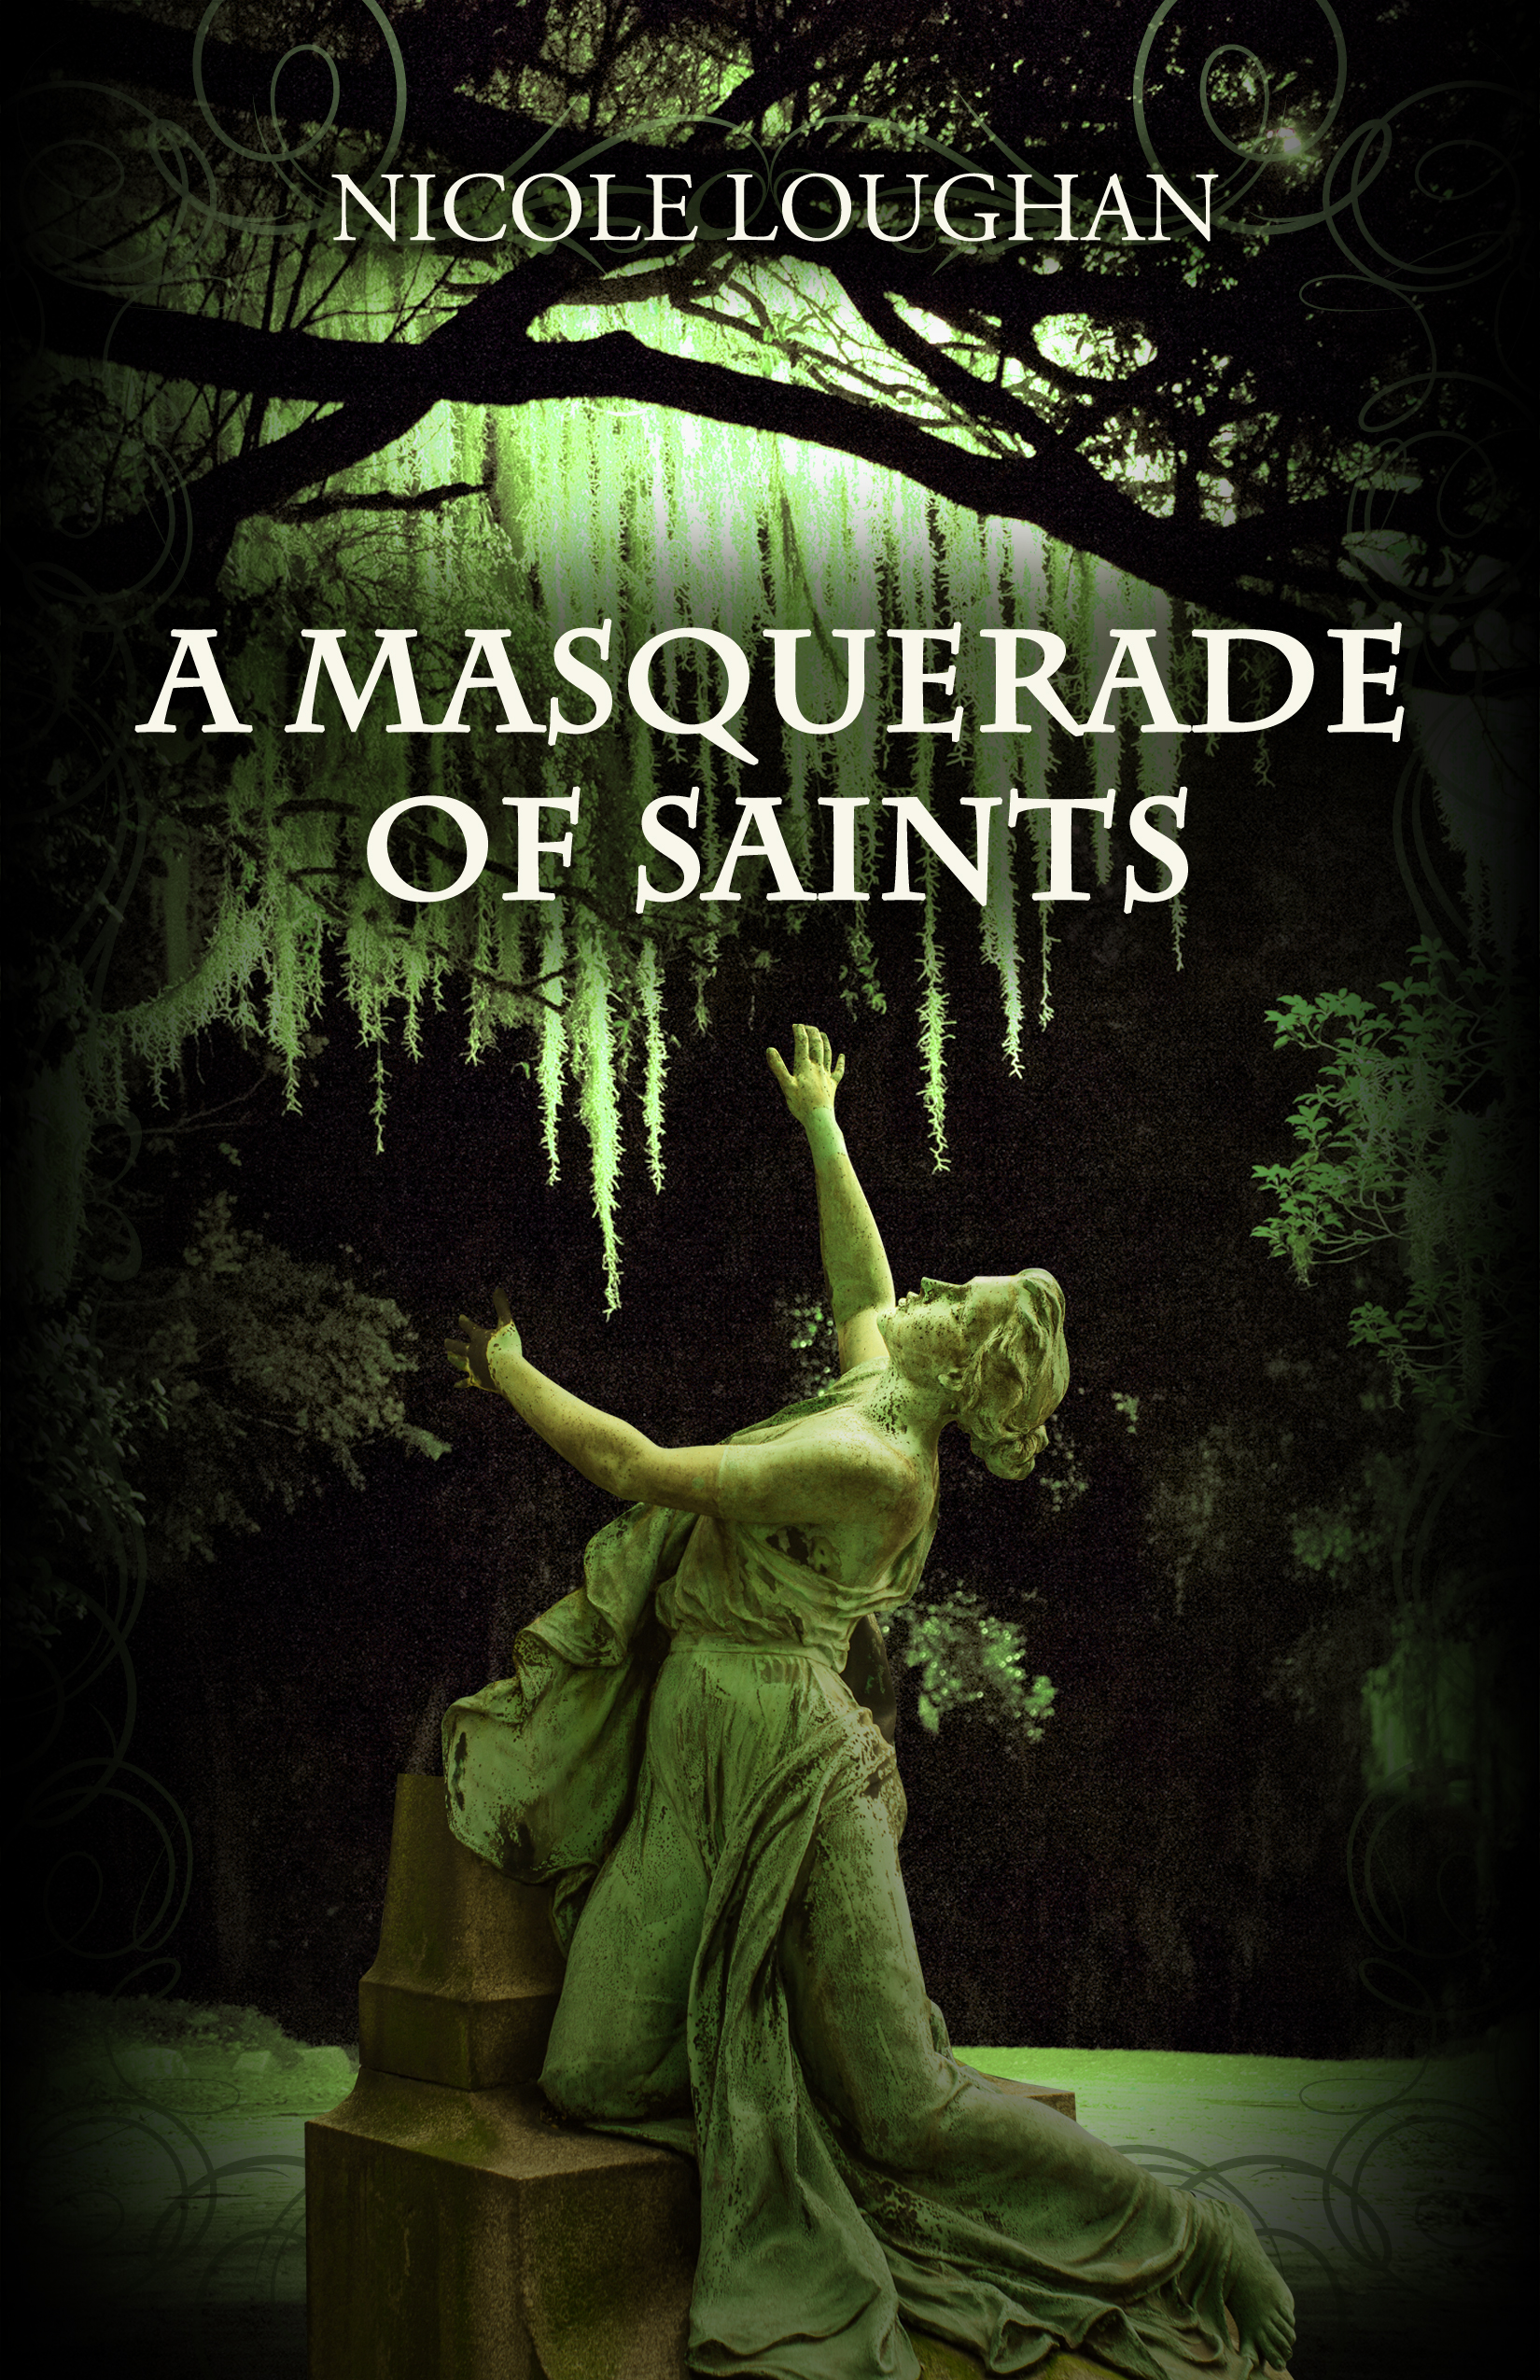 A-Mascarade-of-Saints-300dpi-version4